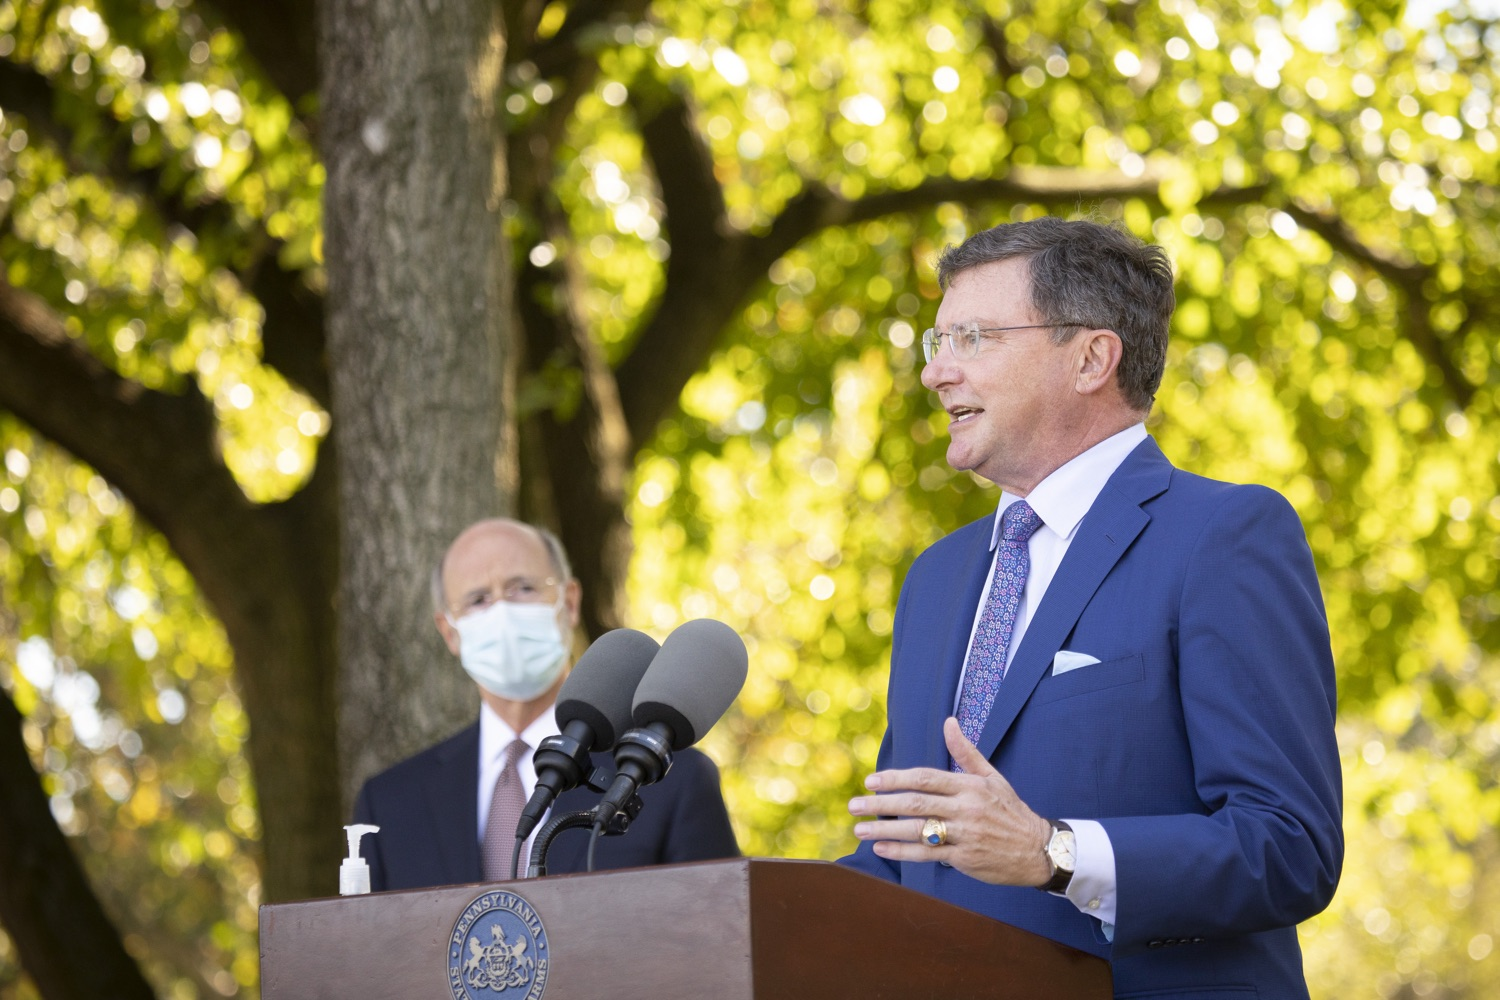 "<a href=""https://filesource.wostreaming.net/commonwealthofpa/photo/18321_gov_aca_dz_019.jpg"" target=""_blank"">⇣ Download Photo<br></a>Michael Duncan, President and CEO, Chester County Hospital, speaking to the press.  As the number of positive COVID-19 cases rise in Pennsylvania and as we enter flu season, protecting the Affordable Care Act (ACA) and ensuring that all Pennsylvanians have access to health coverage are more important than ever, Governor Tom Wolf said today in Chester County. The governor was joined by local elected officials and representatives from local health care organizations. Landenberg, PA  October 15, 2020"